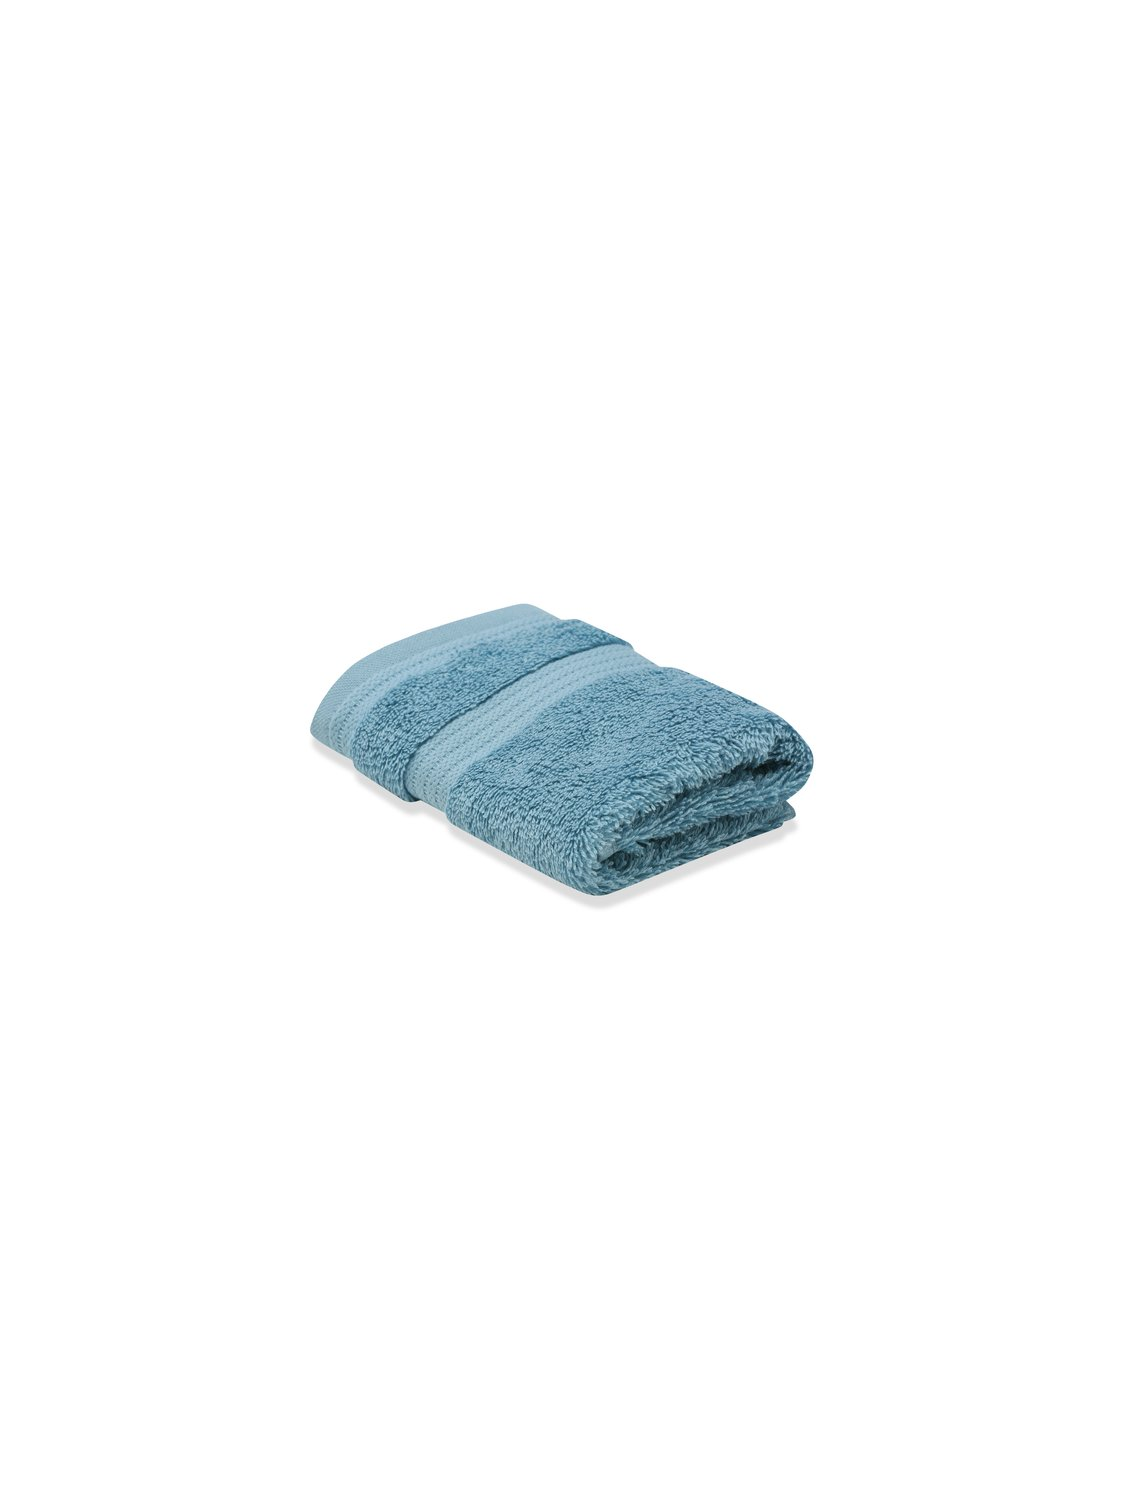 100% Combed Cotton 580Gsm Soft And Absorbent Bathroom Facecloth - Brass